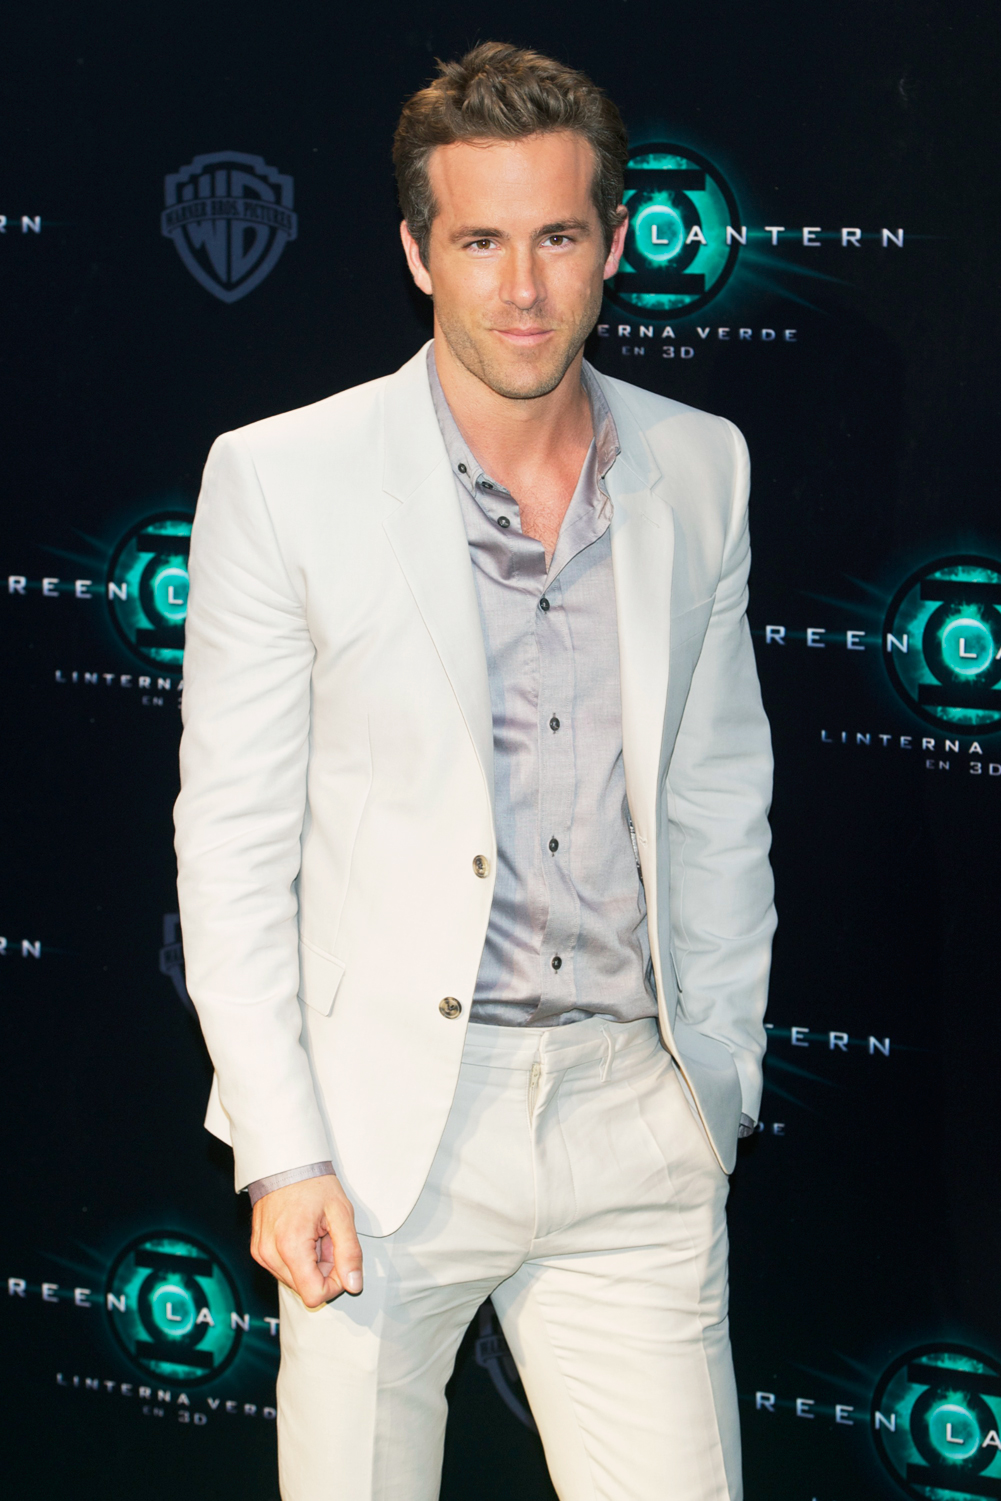 At the Green Lantern premiere in Los Angeles, 2011.